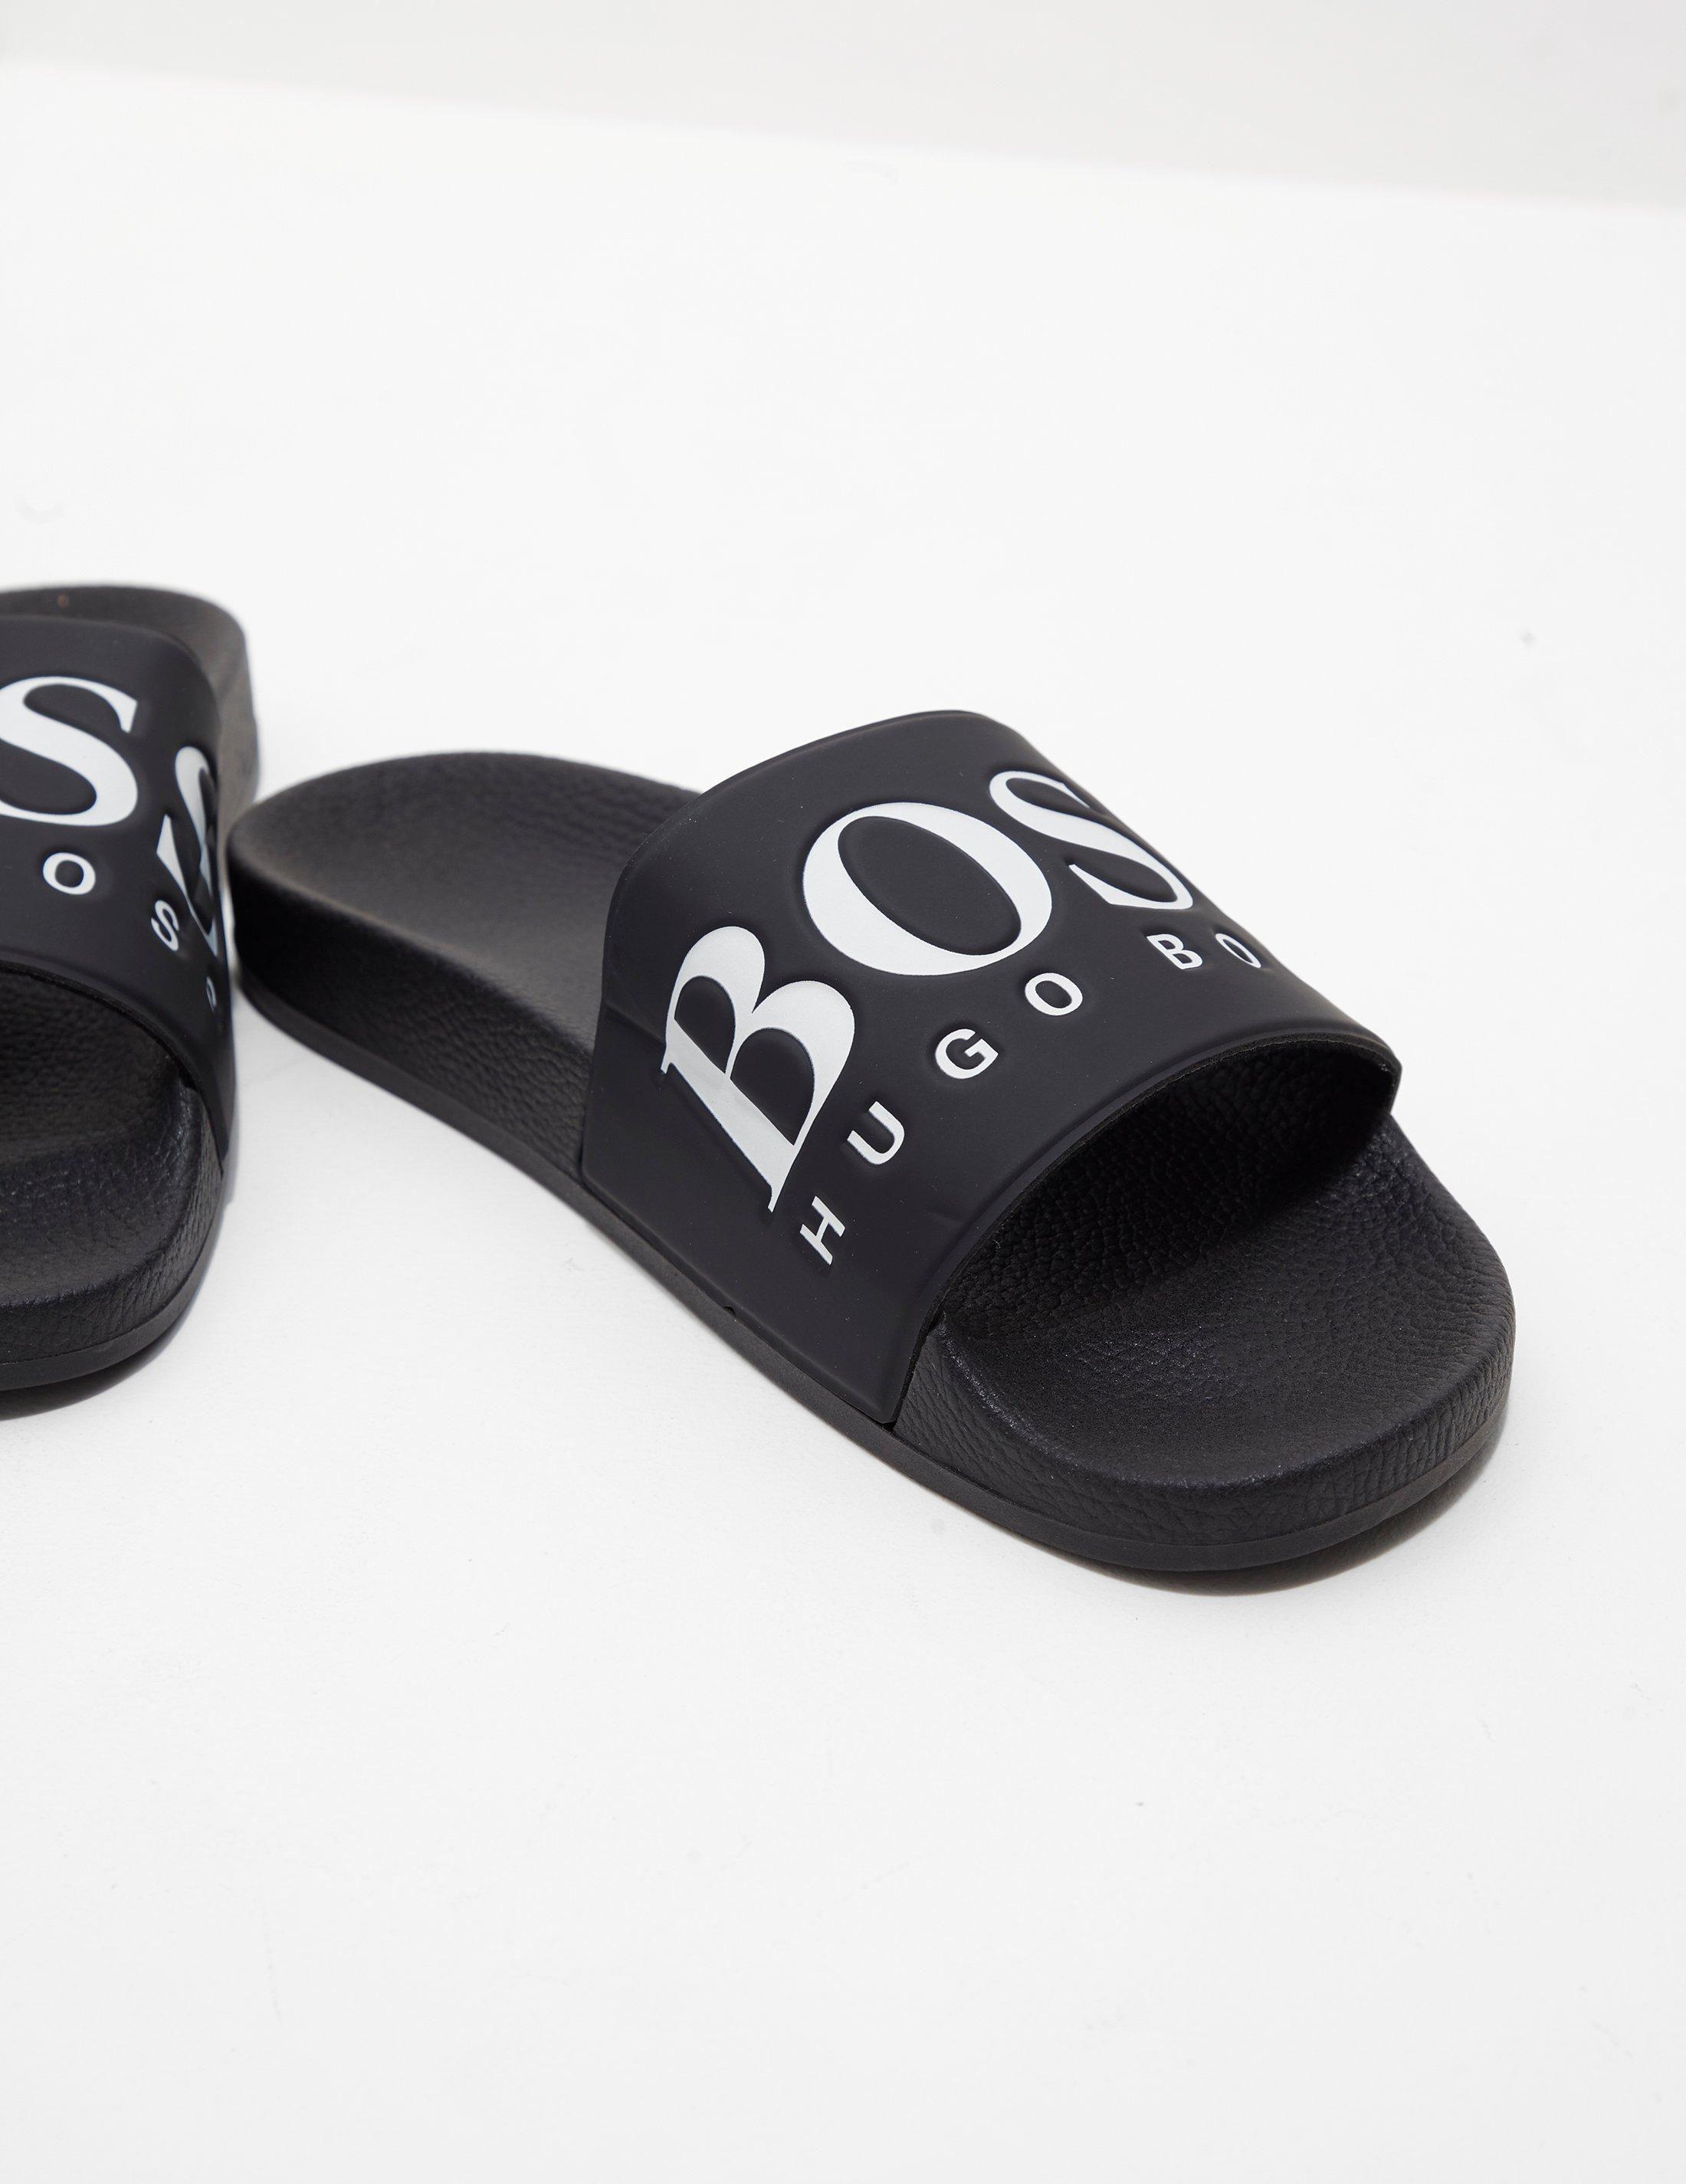 eea69867c0673e Lyst - BOSS Mens Solar Slides - Exclusively To Tessuti Black in Black for  Men